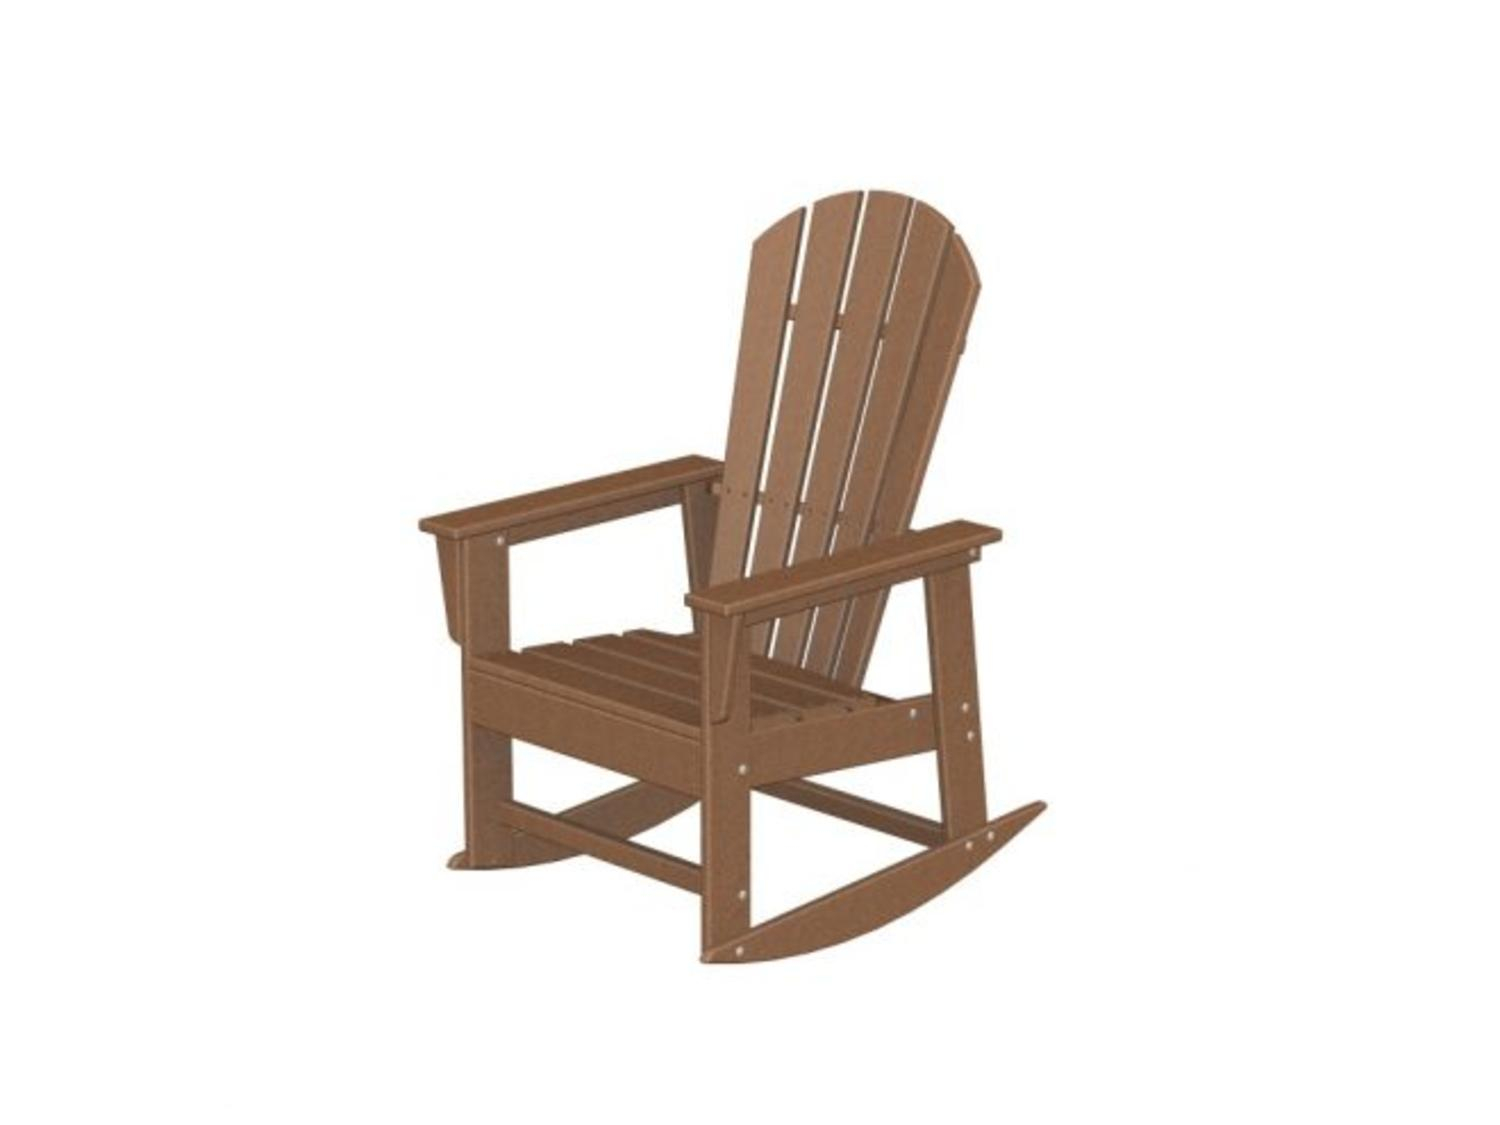 Banana Rocker Chair Recycled Earth Friendly Venice Beach Outdoor Adirondack